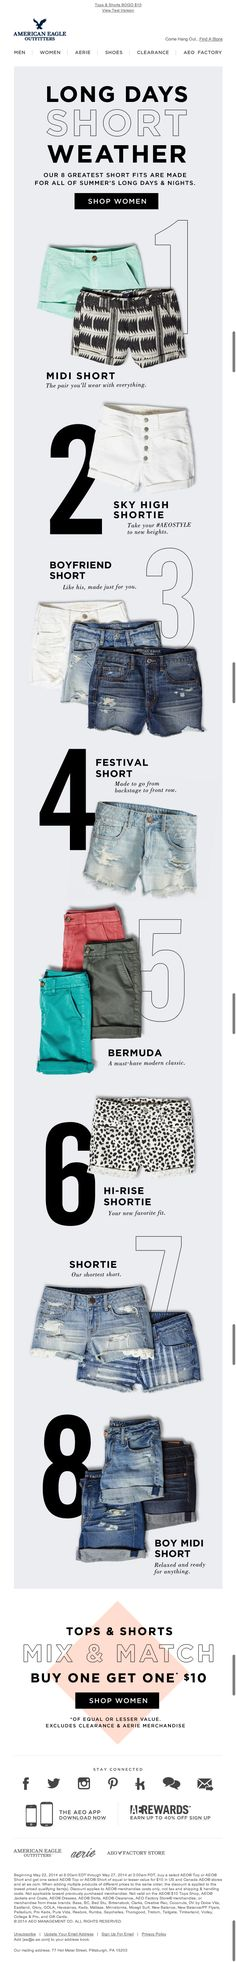 american eagle newsletter